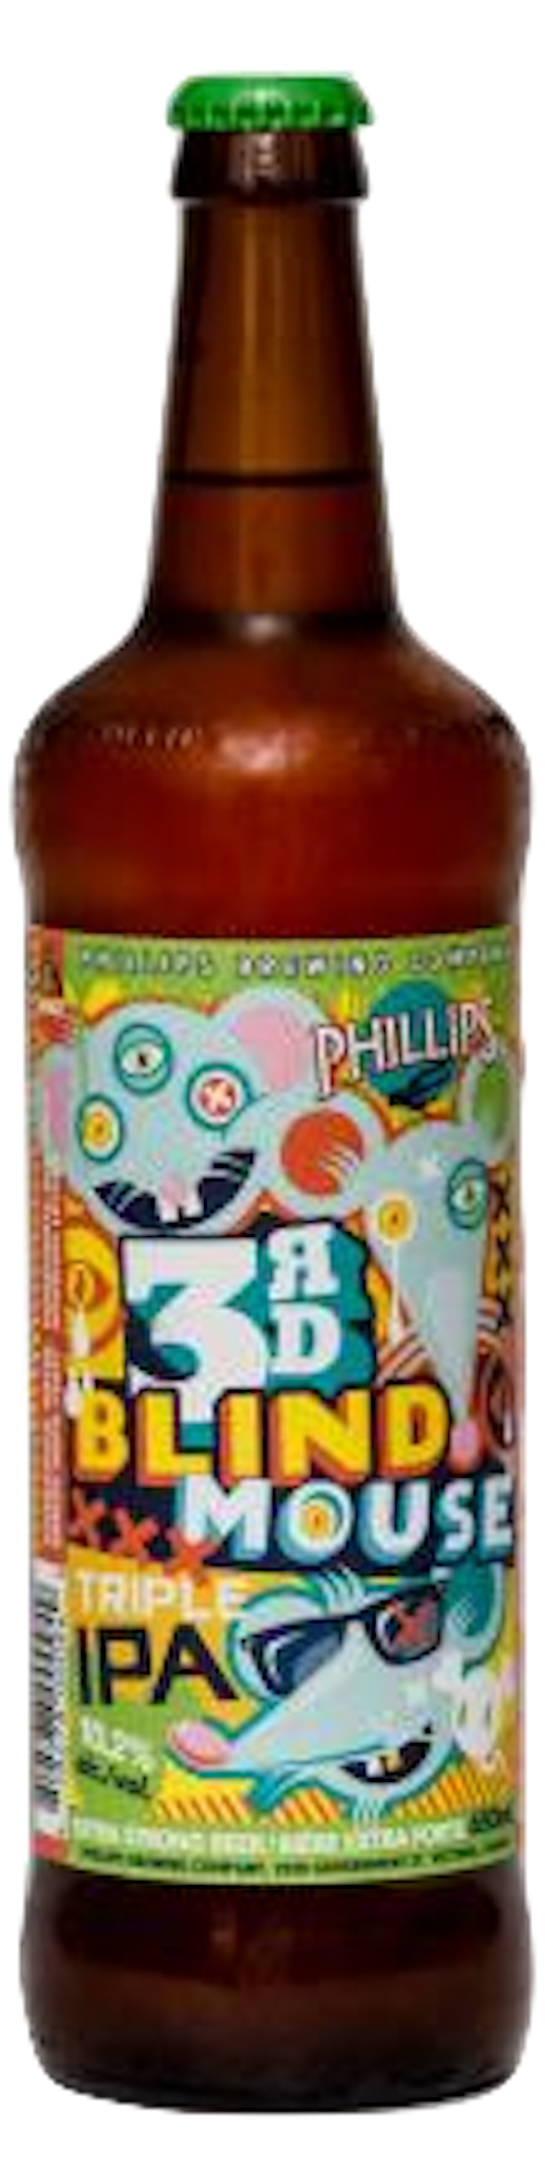 IPA-third-blind-mouse-phillips-brewing-india-pale-ale-just-beer